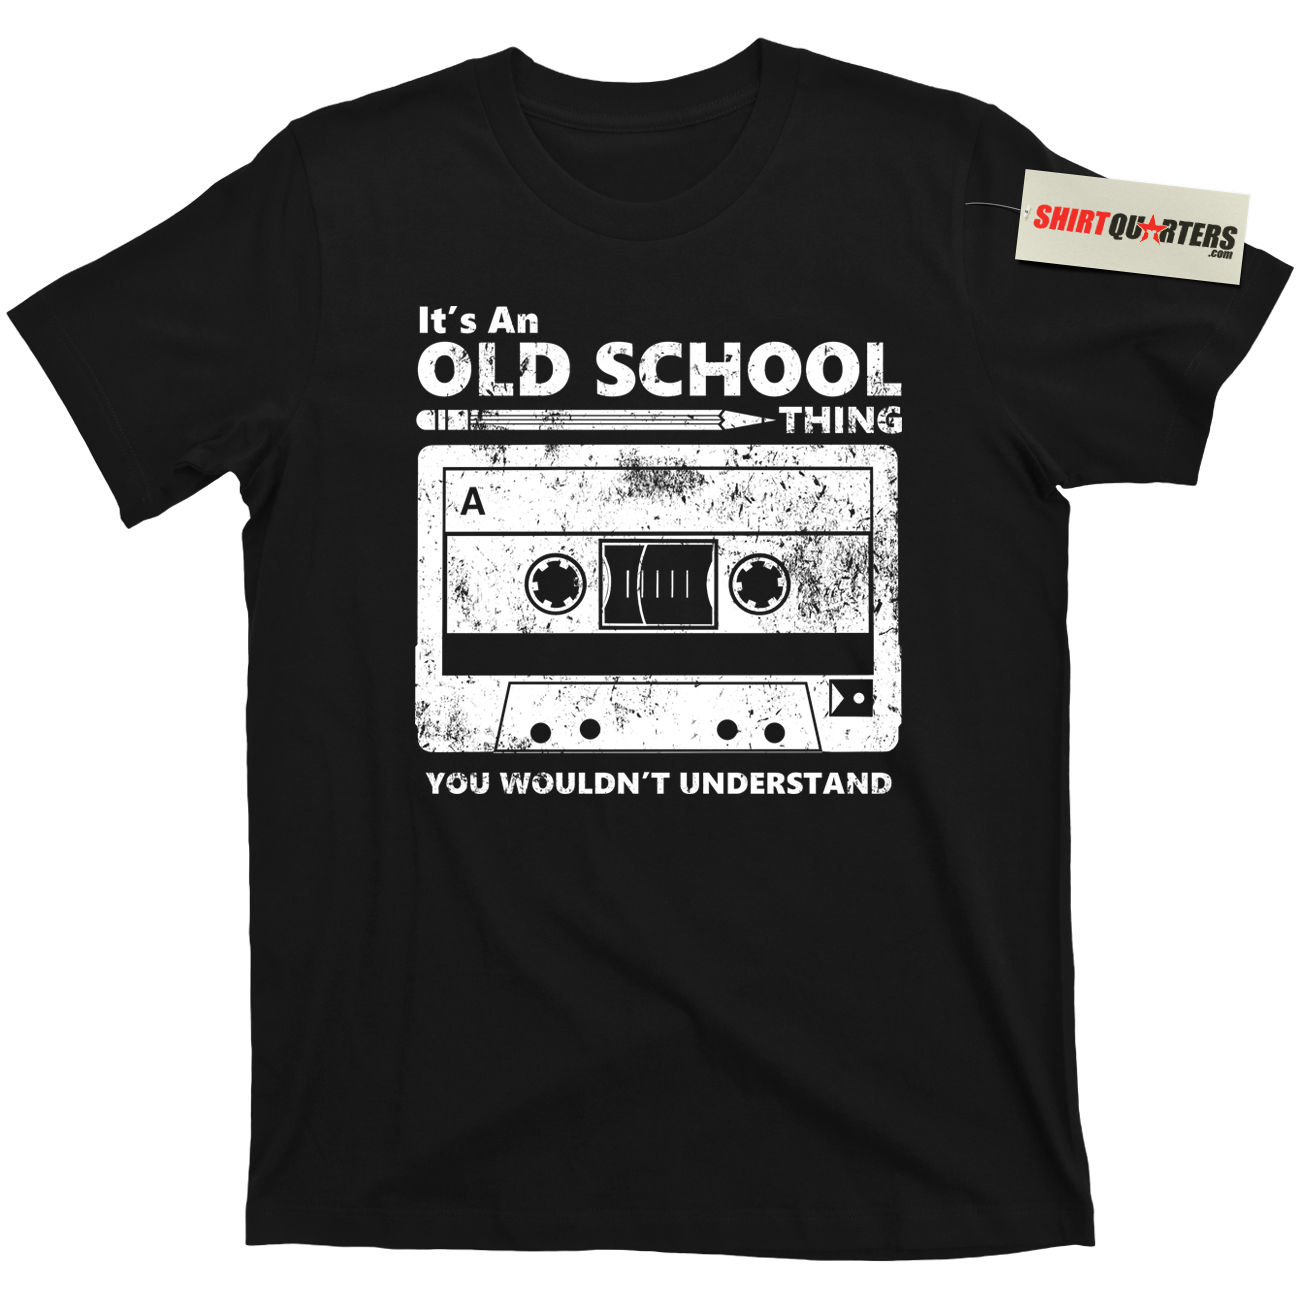 2019 Summer Fashion Hot Cassette Tape Pencil Boombox Headphones Mixtape Old School DJ Deejay Tee   T     Shirt   Tee   Shirt